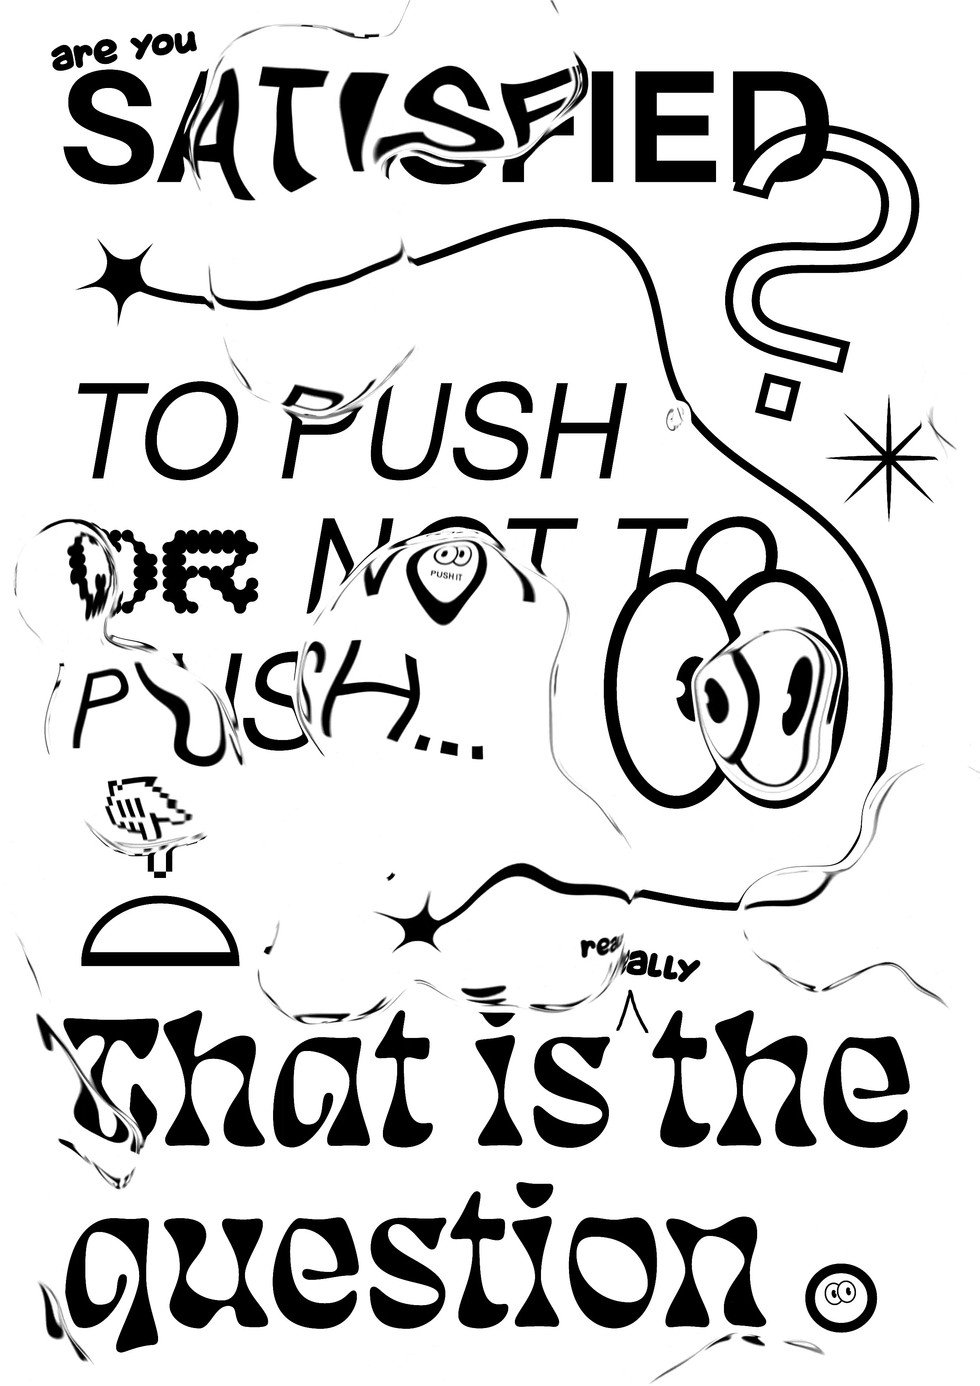 To push or not to push poster bubbles.mp